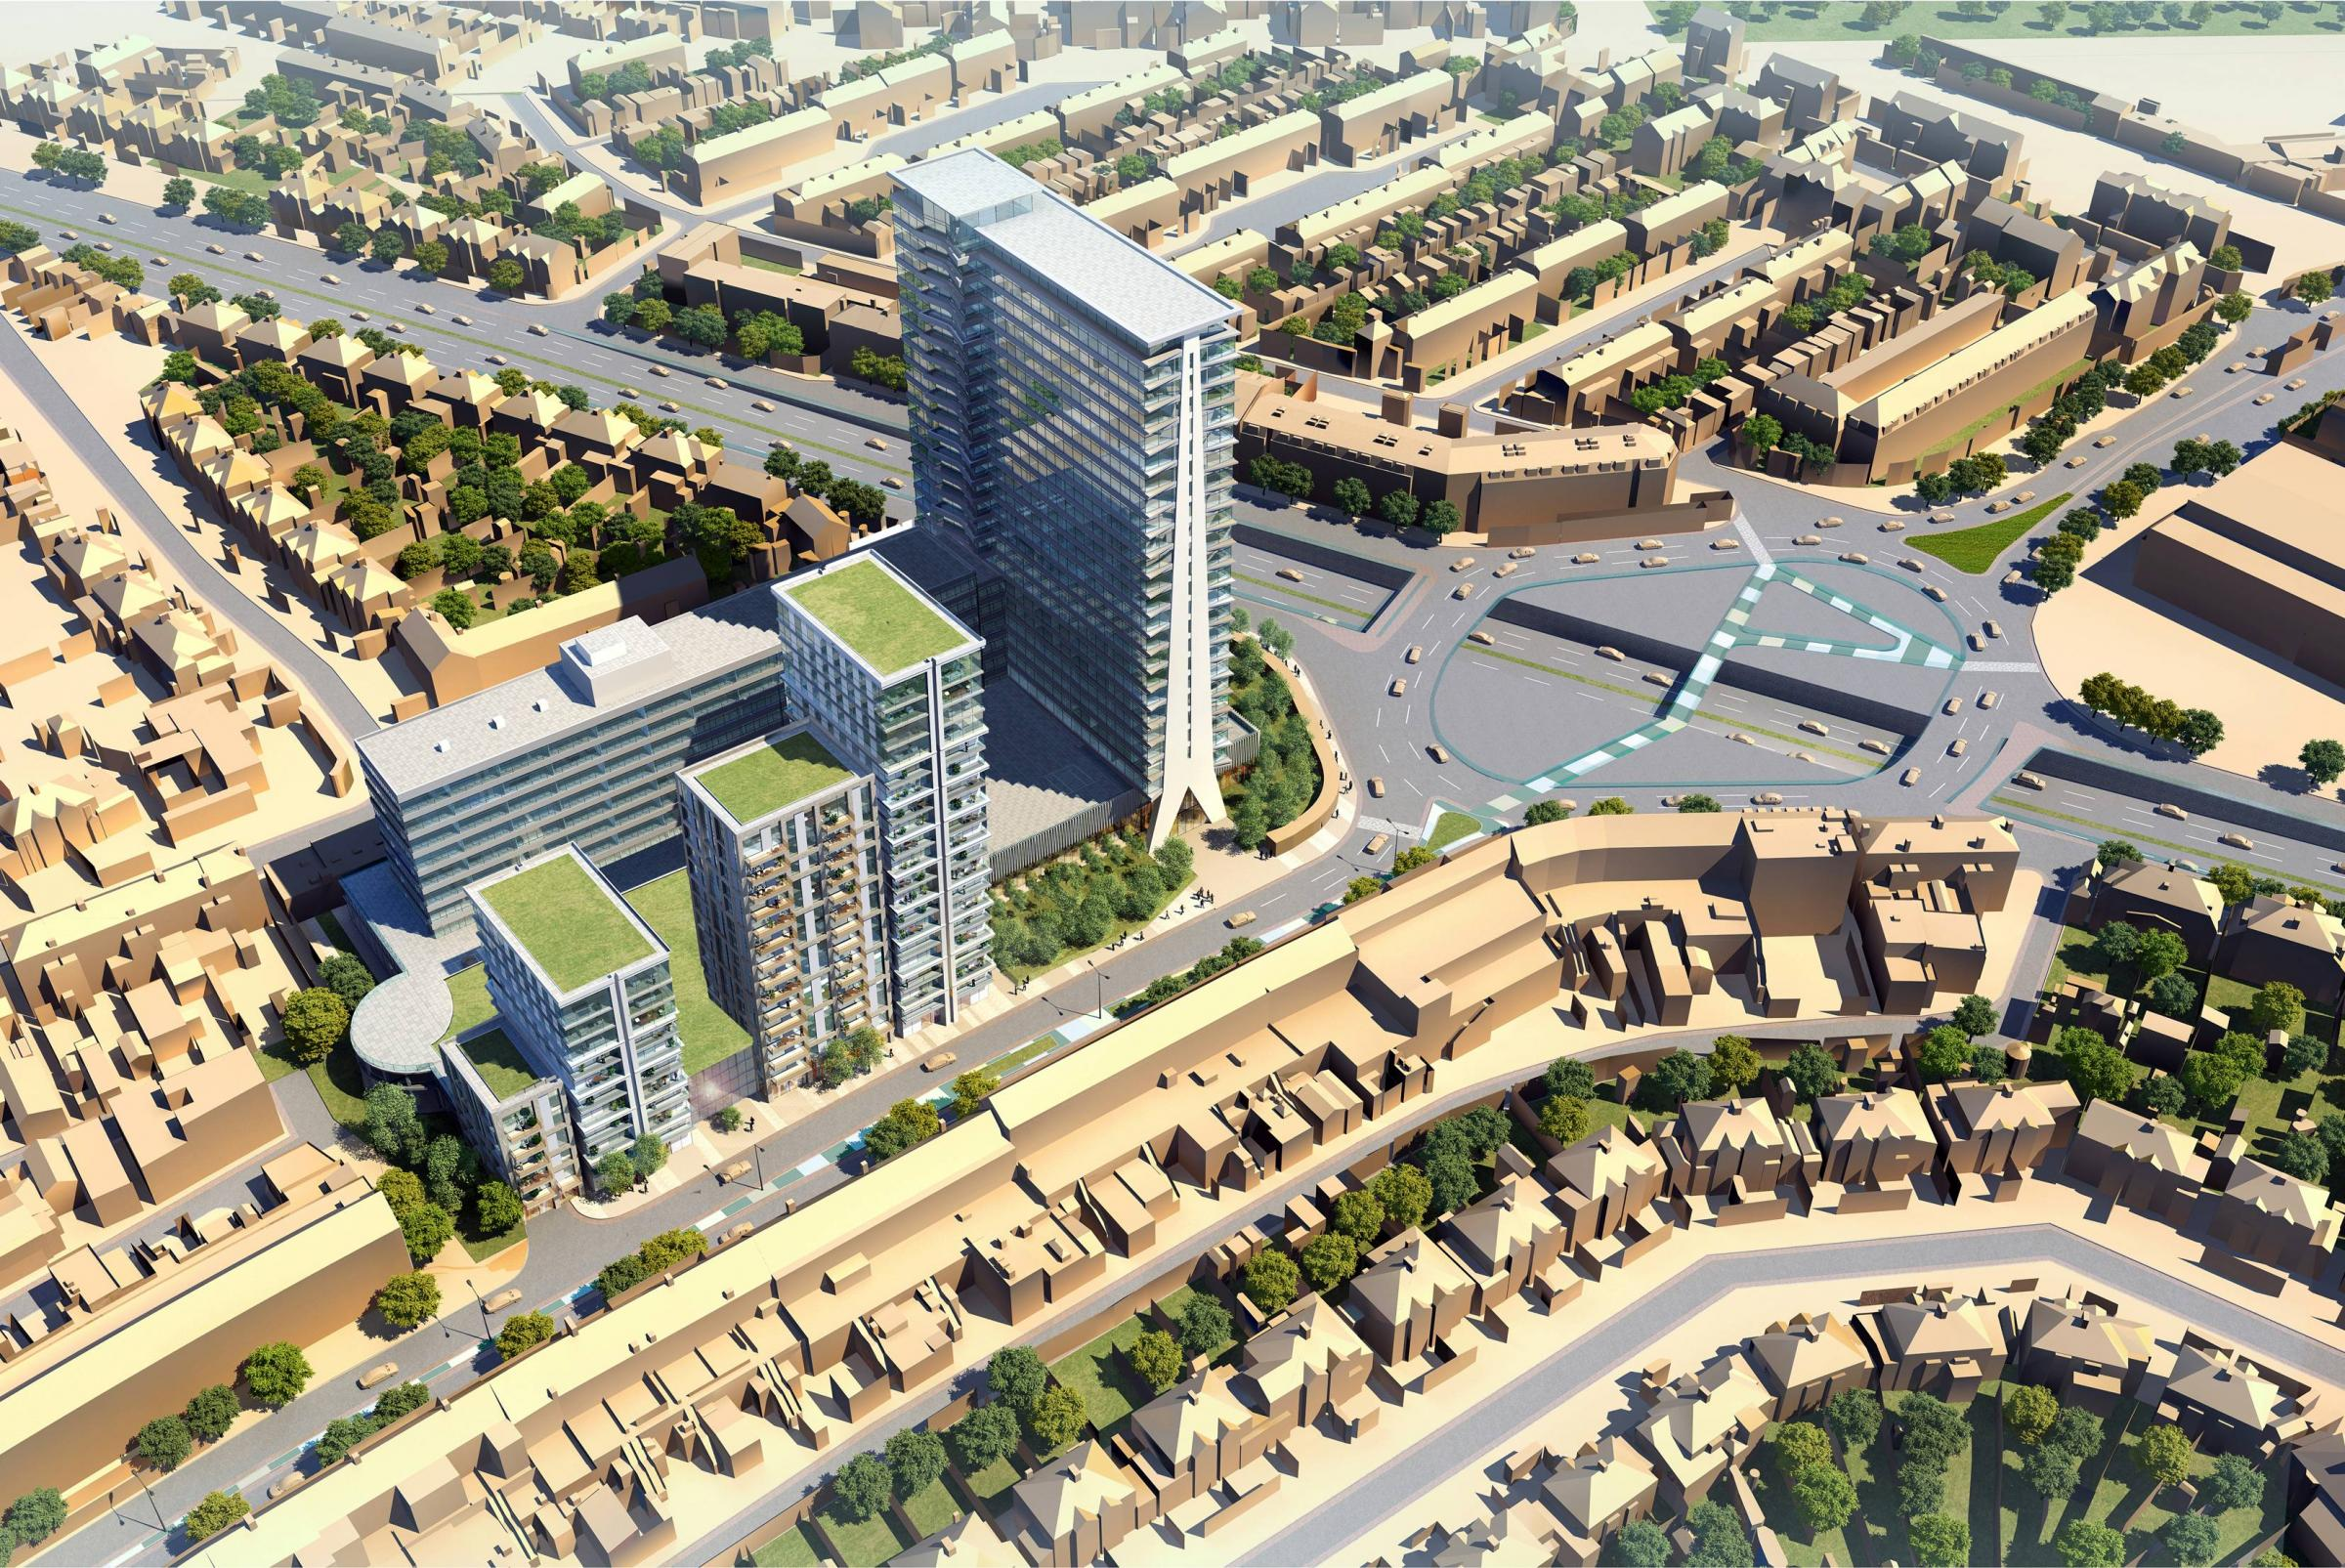 ... Four new tower blocks proposed as part of Tolworth Tower regeneration